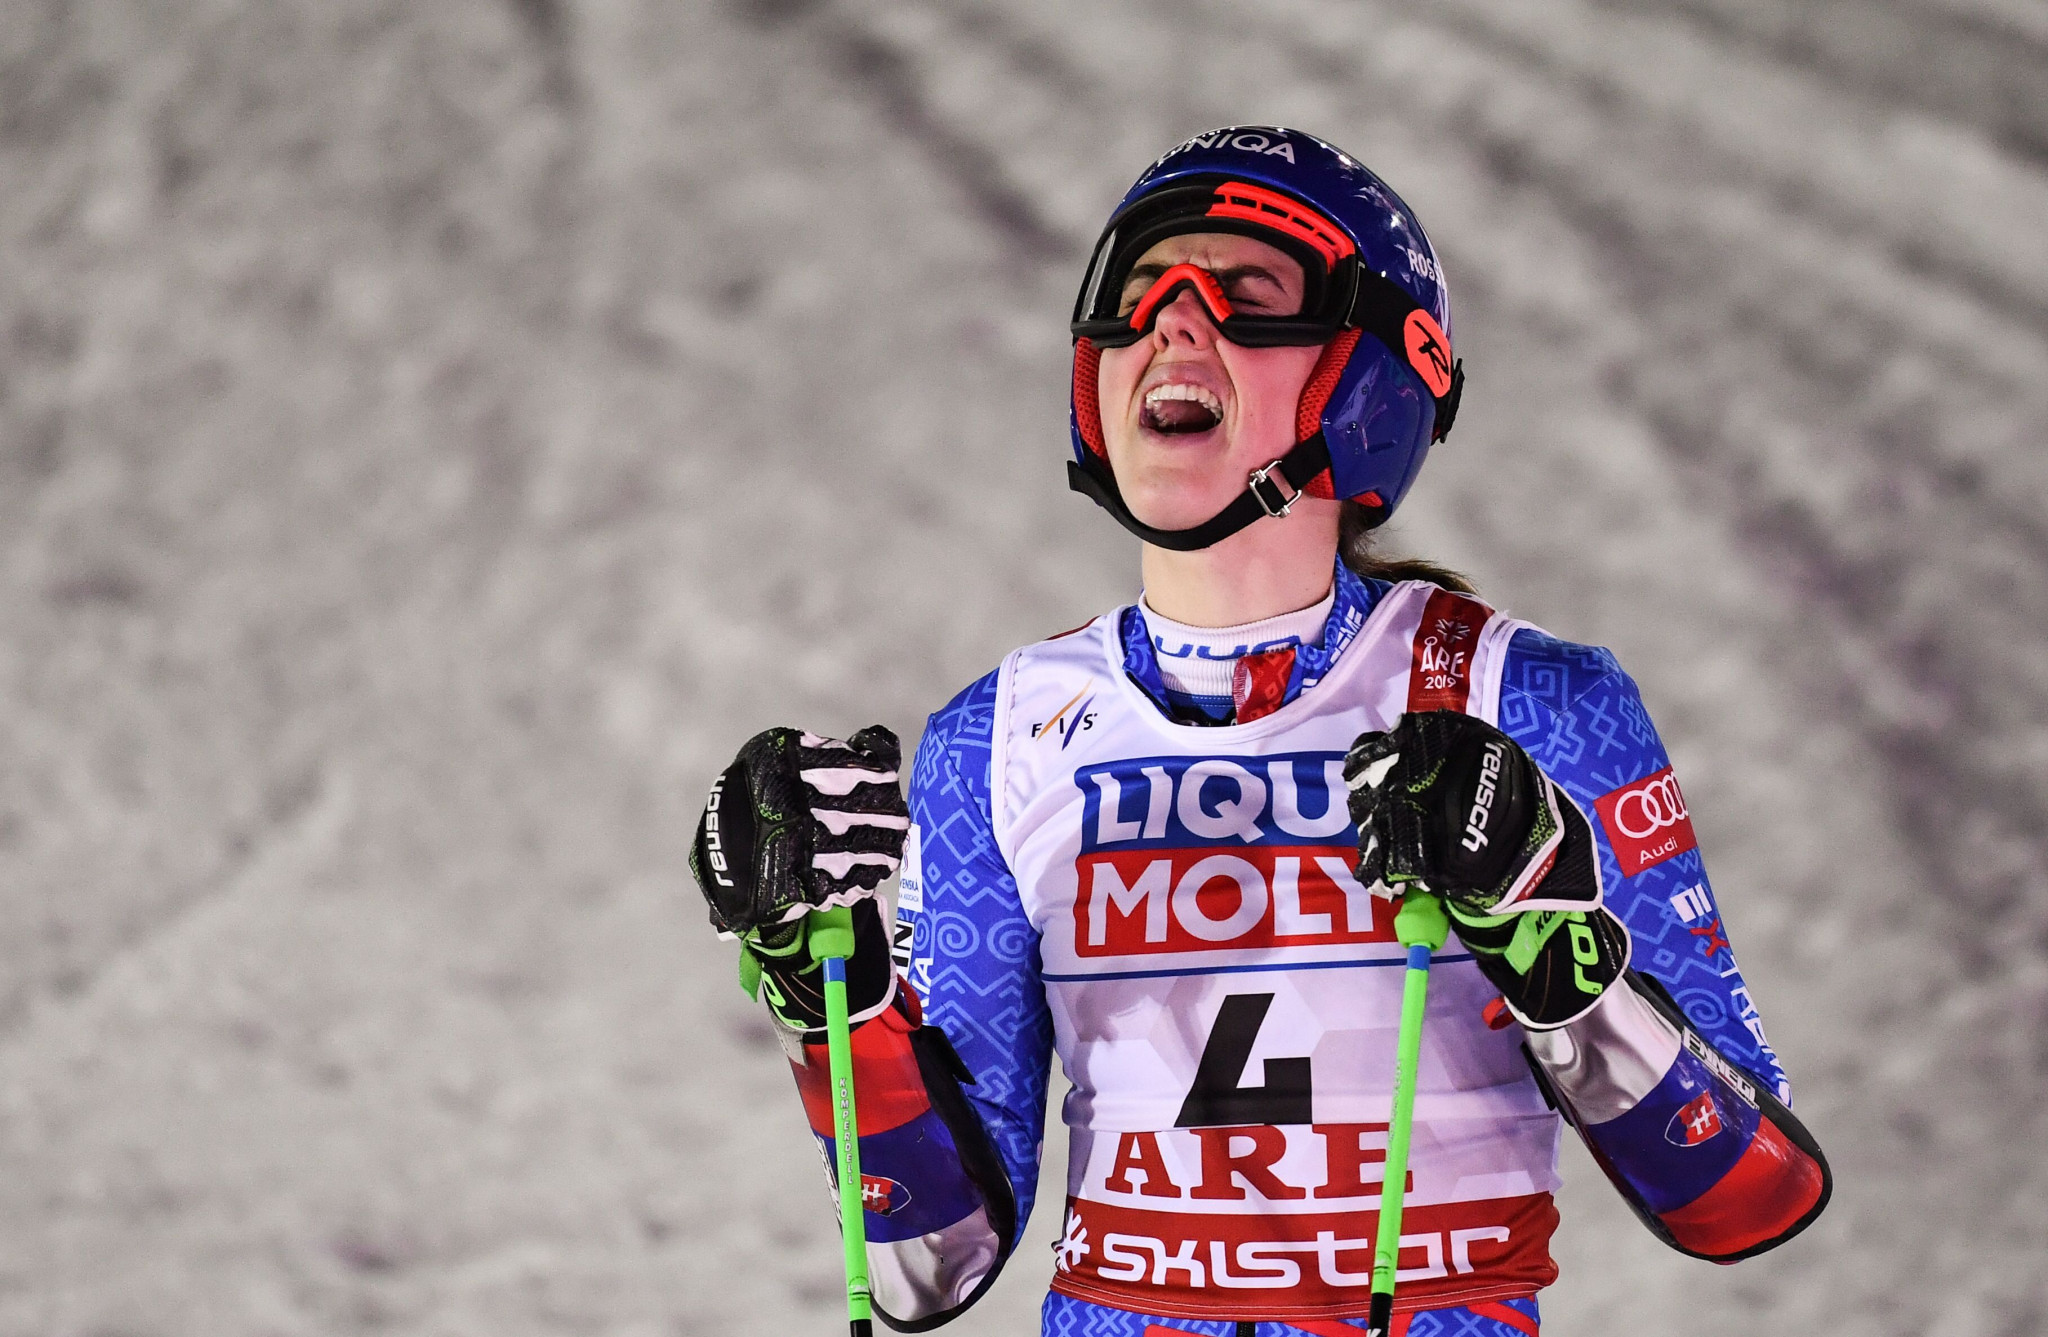 Amid warm, windy conditions Petra Vlhova won the women's giant slalom title in Åre to claim her first world gold ©Getty Images